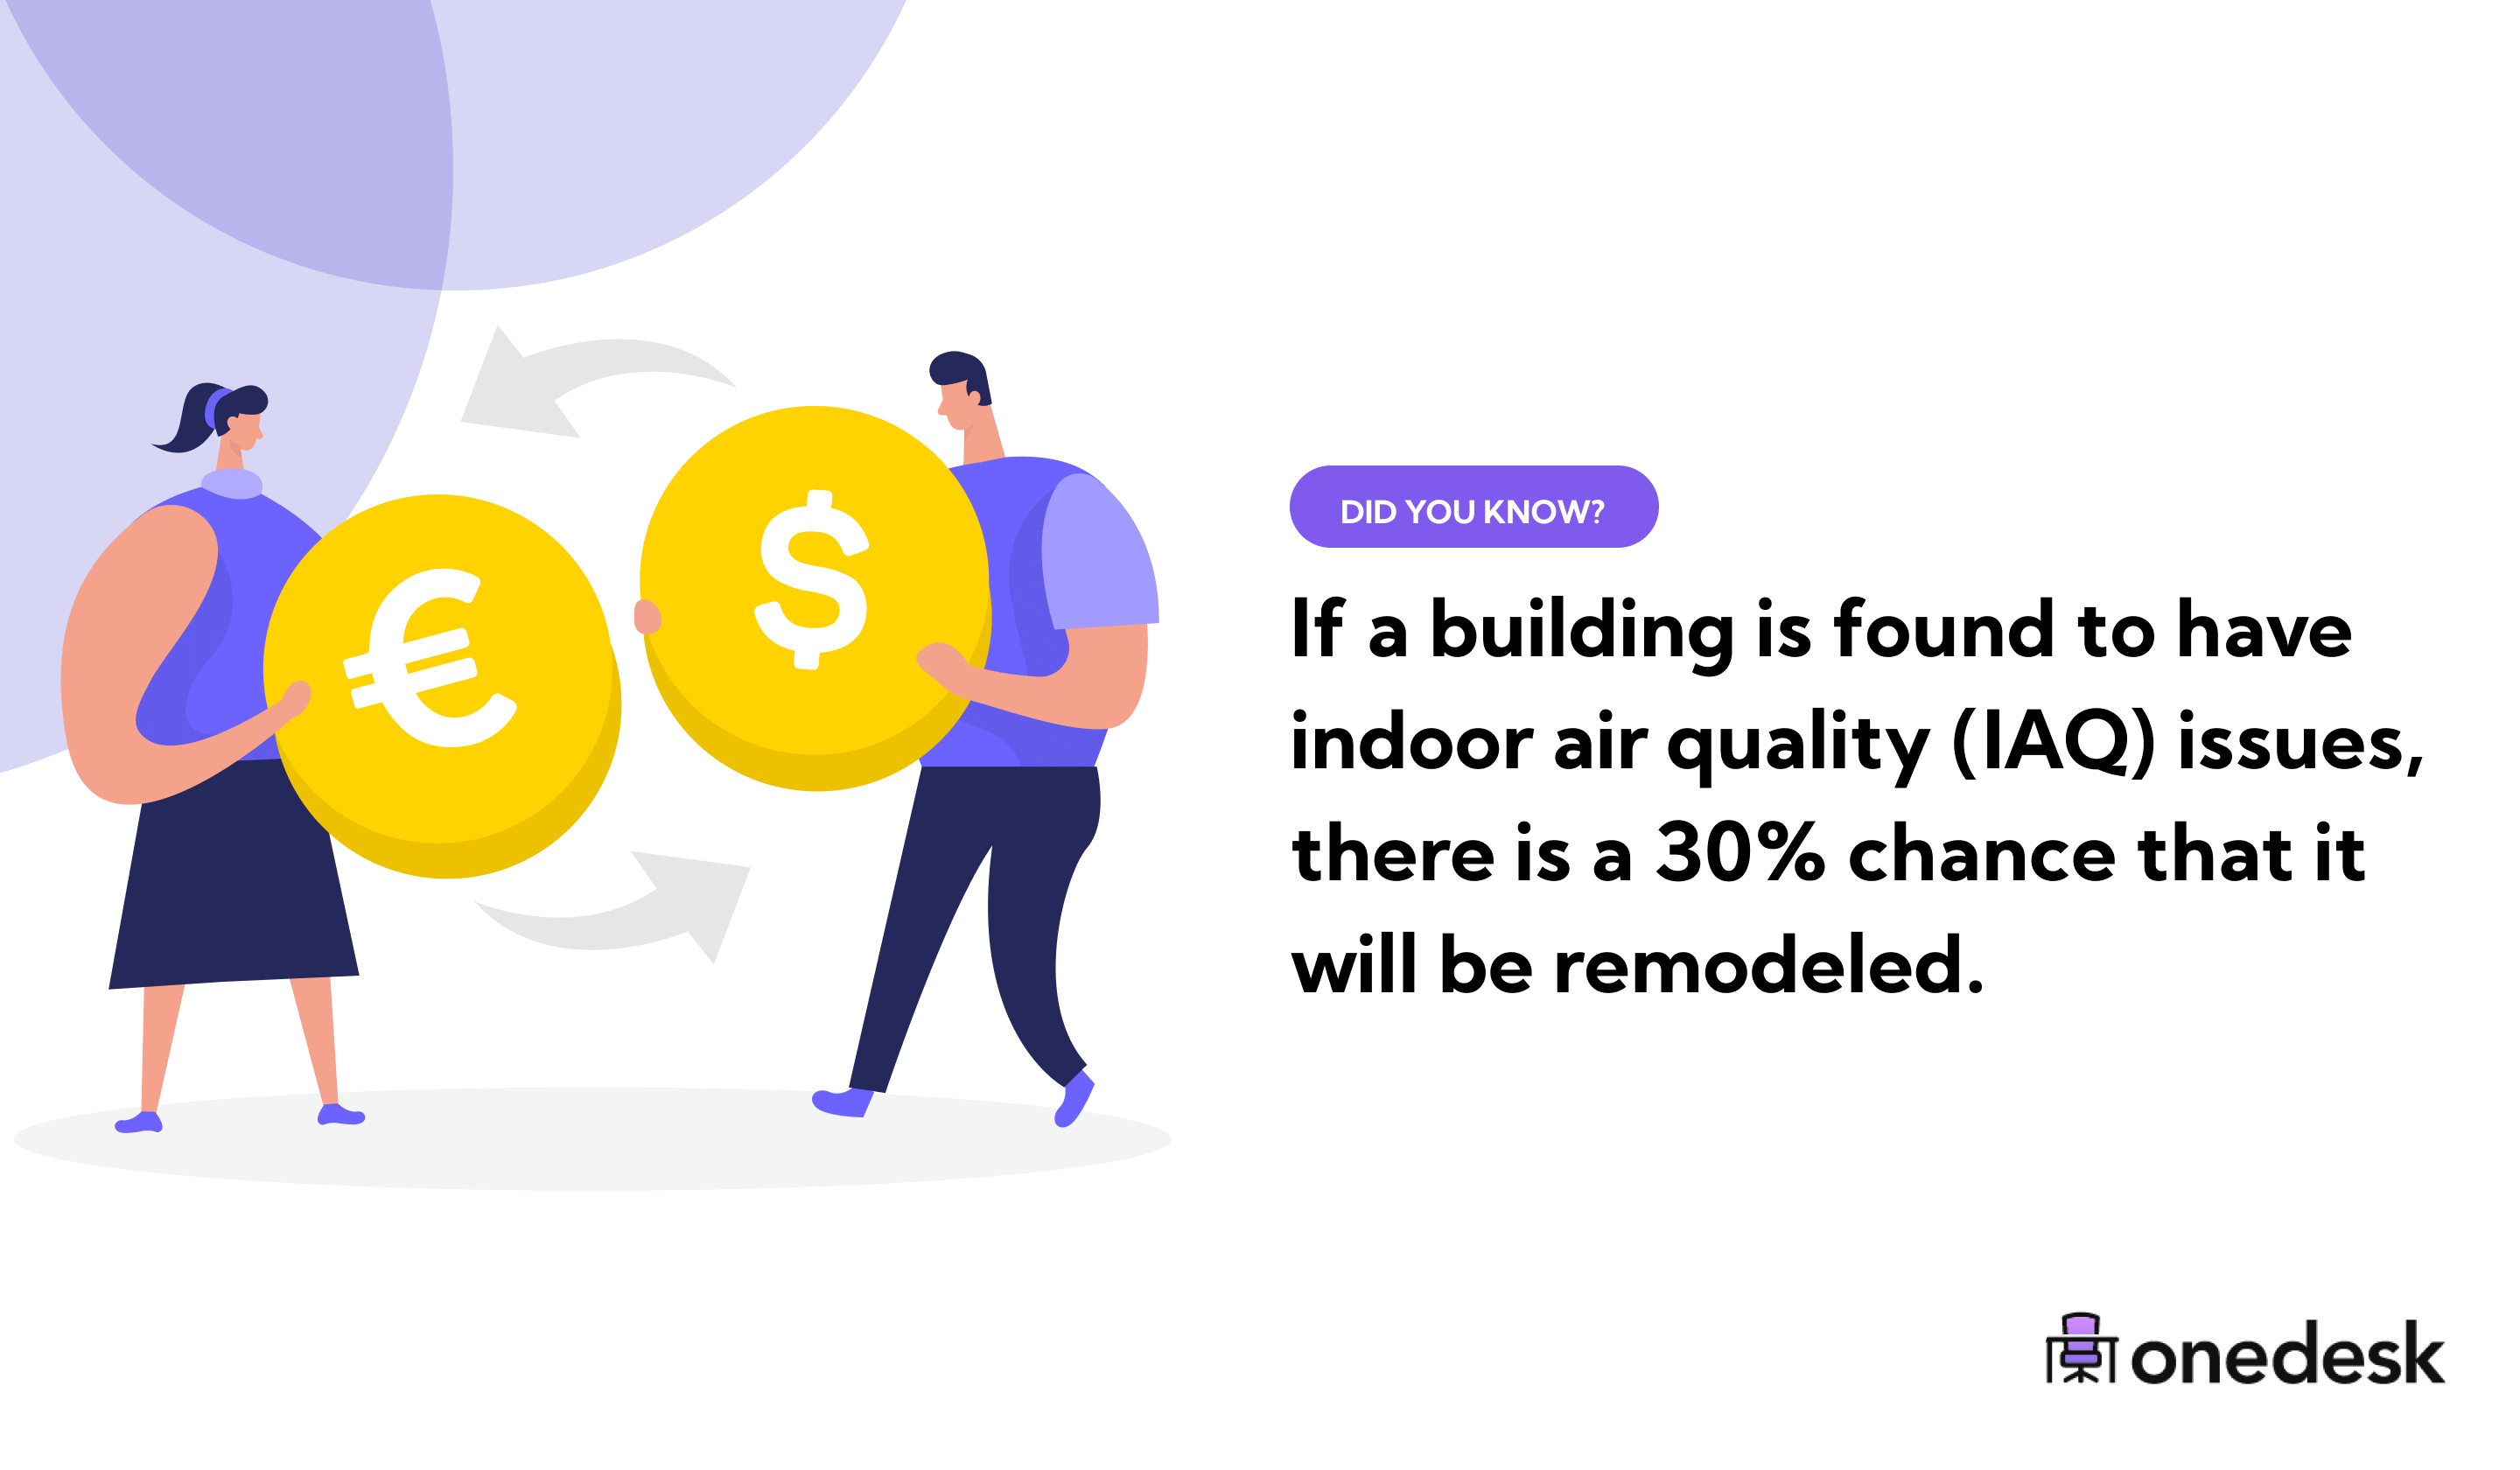 change that a building will be remodeled with IAQ issues